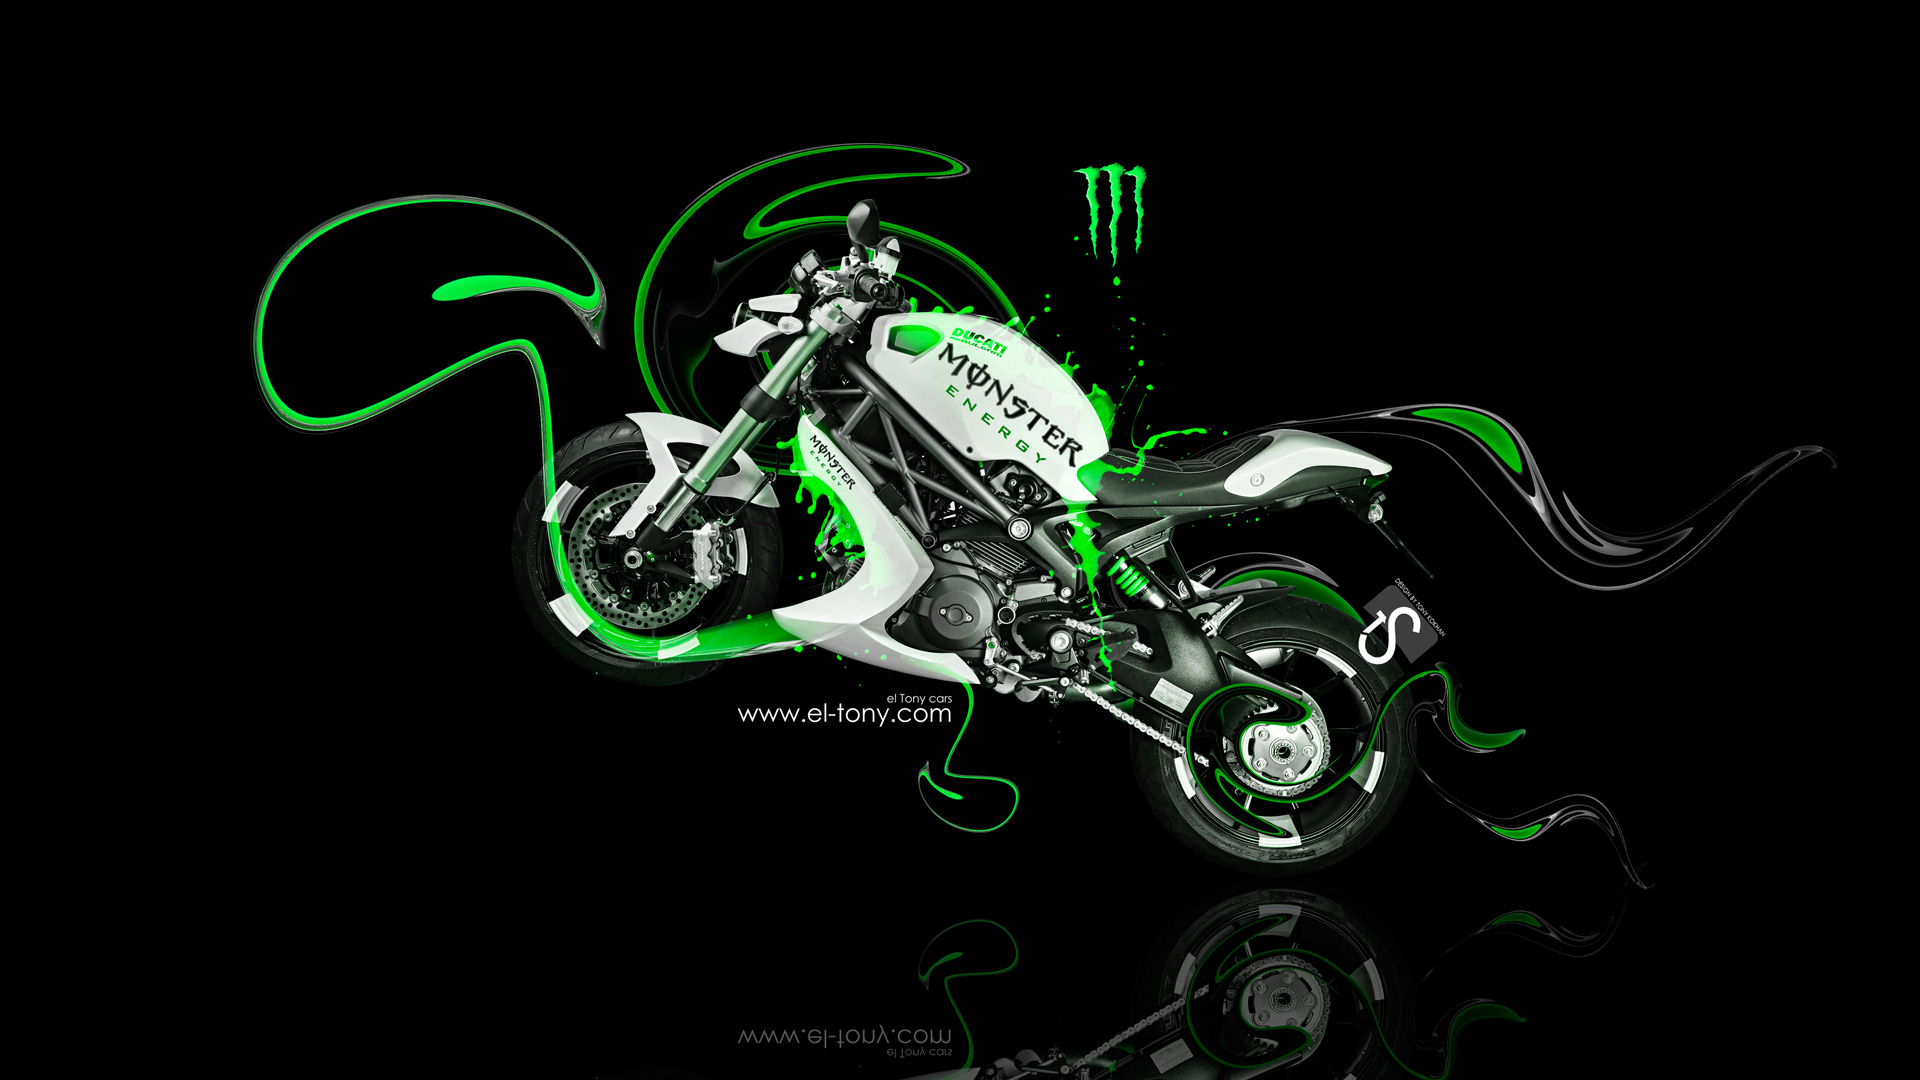 Monster-Energy-Ducati-Bulgari-Fantasy-Moto-Green-Plastic-2014-by-Tony-Kokhan-[www.el-tony.com]